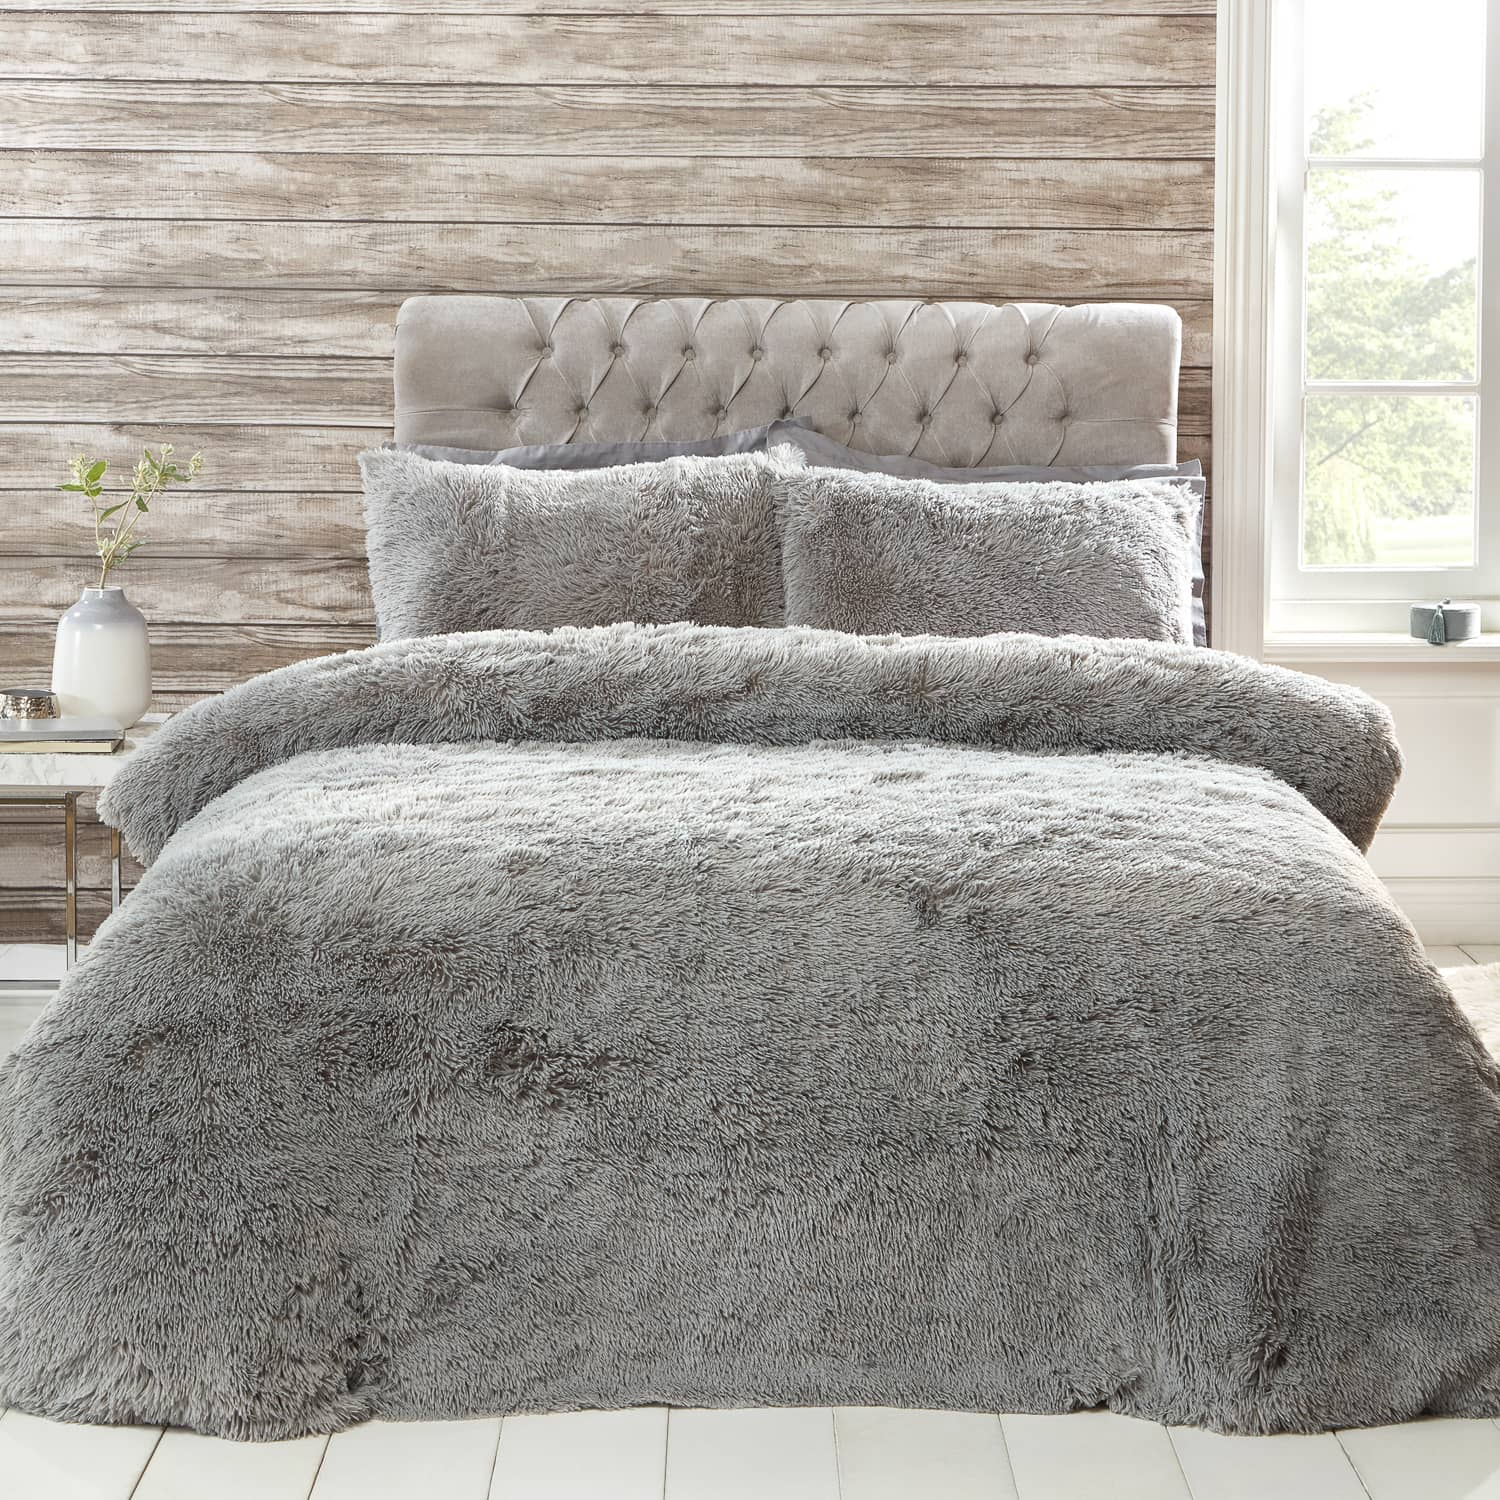 shaggy faux fur bedding set from b m